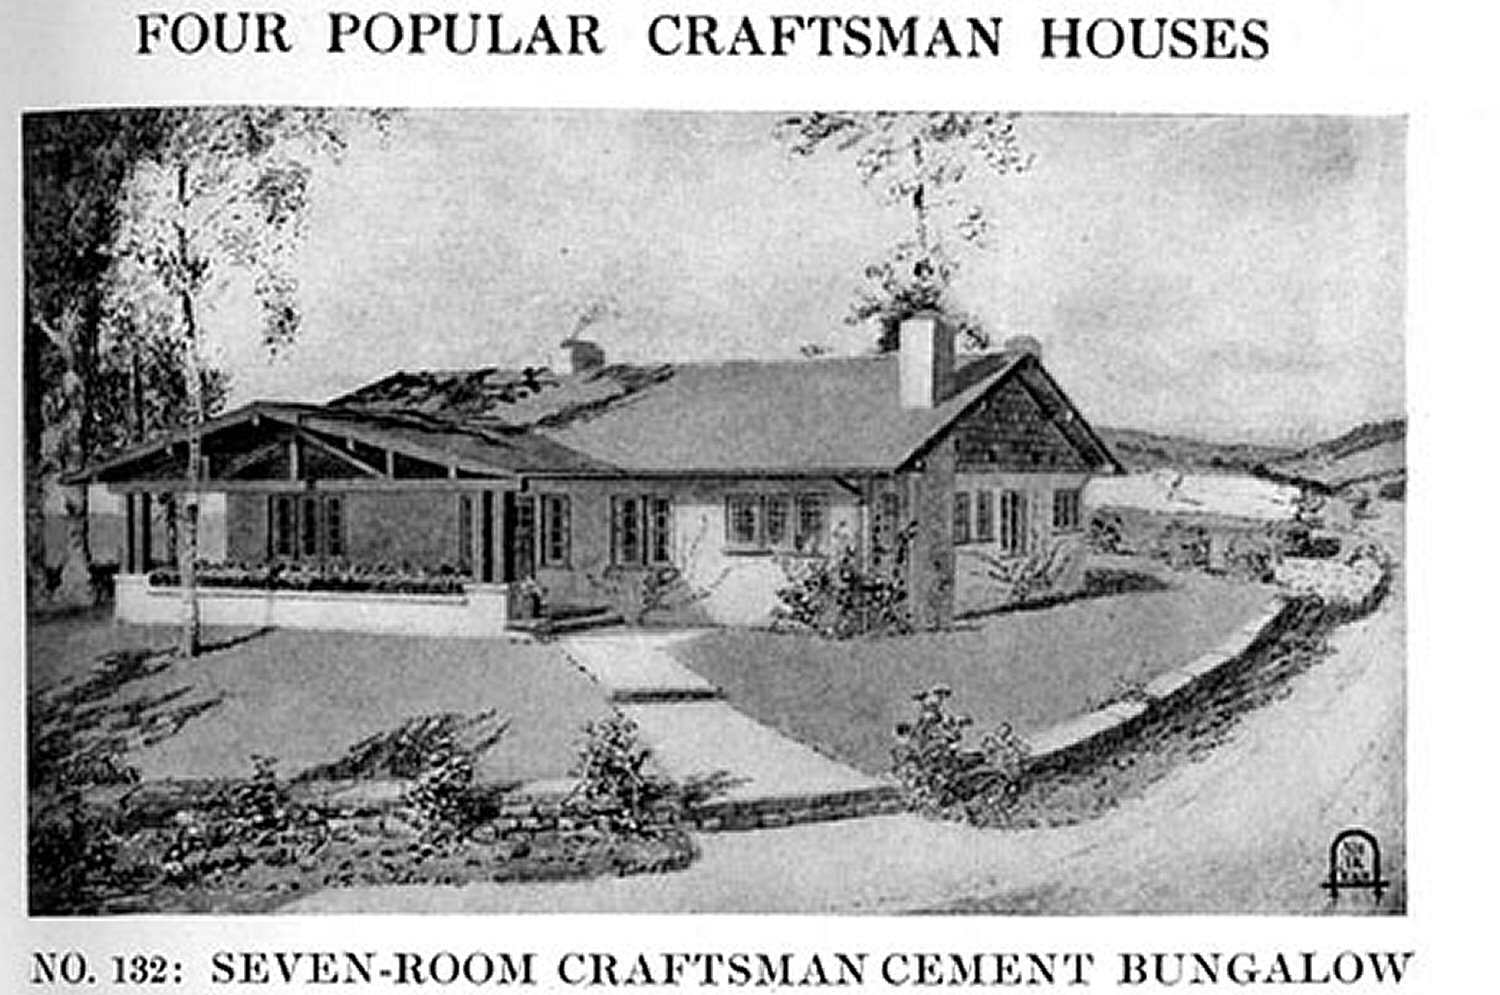 black and white illustration of No. 132 Seven-room craftsman cement bungalow from Craftsman Magazine